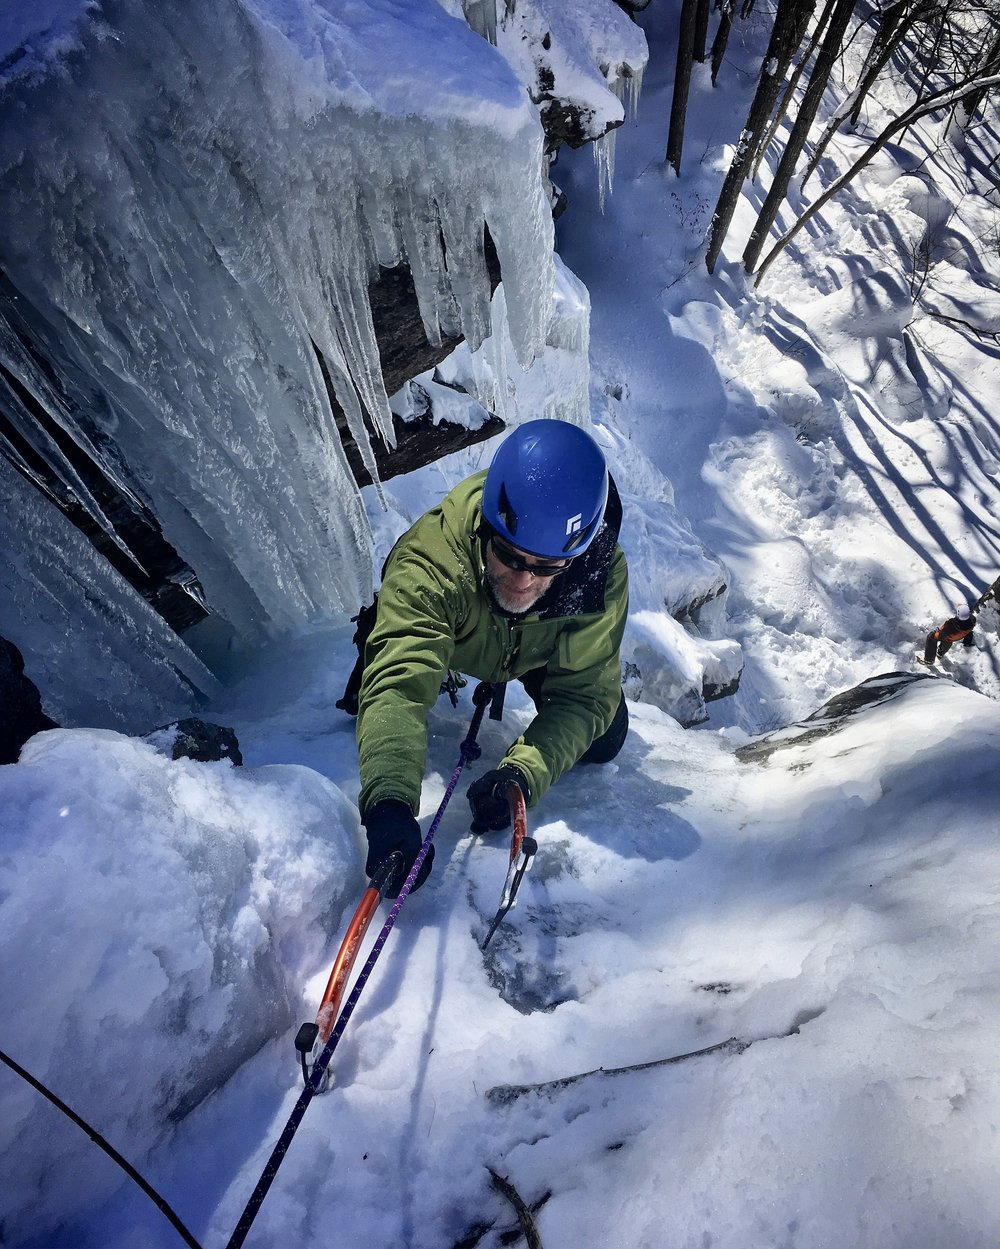 Camden offers beginner friendly climbing with short flows of varying degree of steepness to steep overhanging curtains of icicles. No matter your climbing goals, there's ice for everyones ability. You can work with a certified guide, who will provide not only the climbing gear but knowledge of the park to customize your adventure. Each year the routes of ice to be climbed form in different ways, depending on the amount of precipitation and temps, and each season provide a slightly new climb, new challenge.